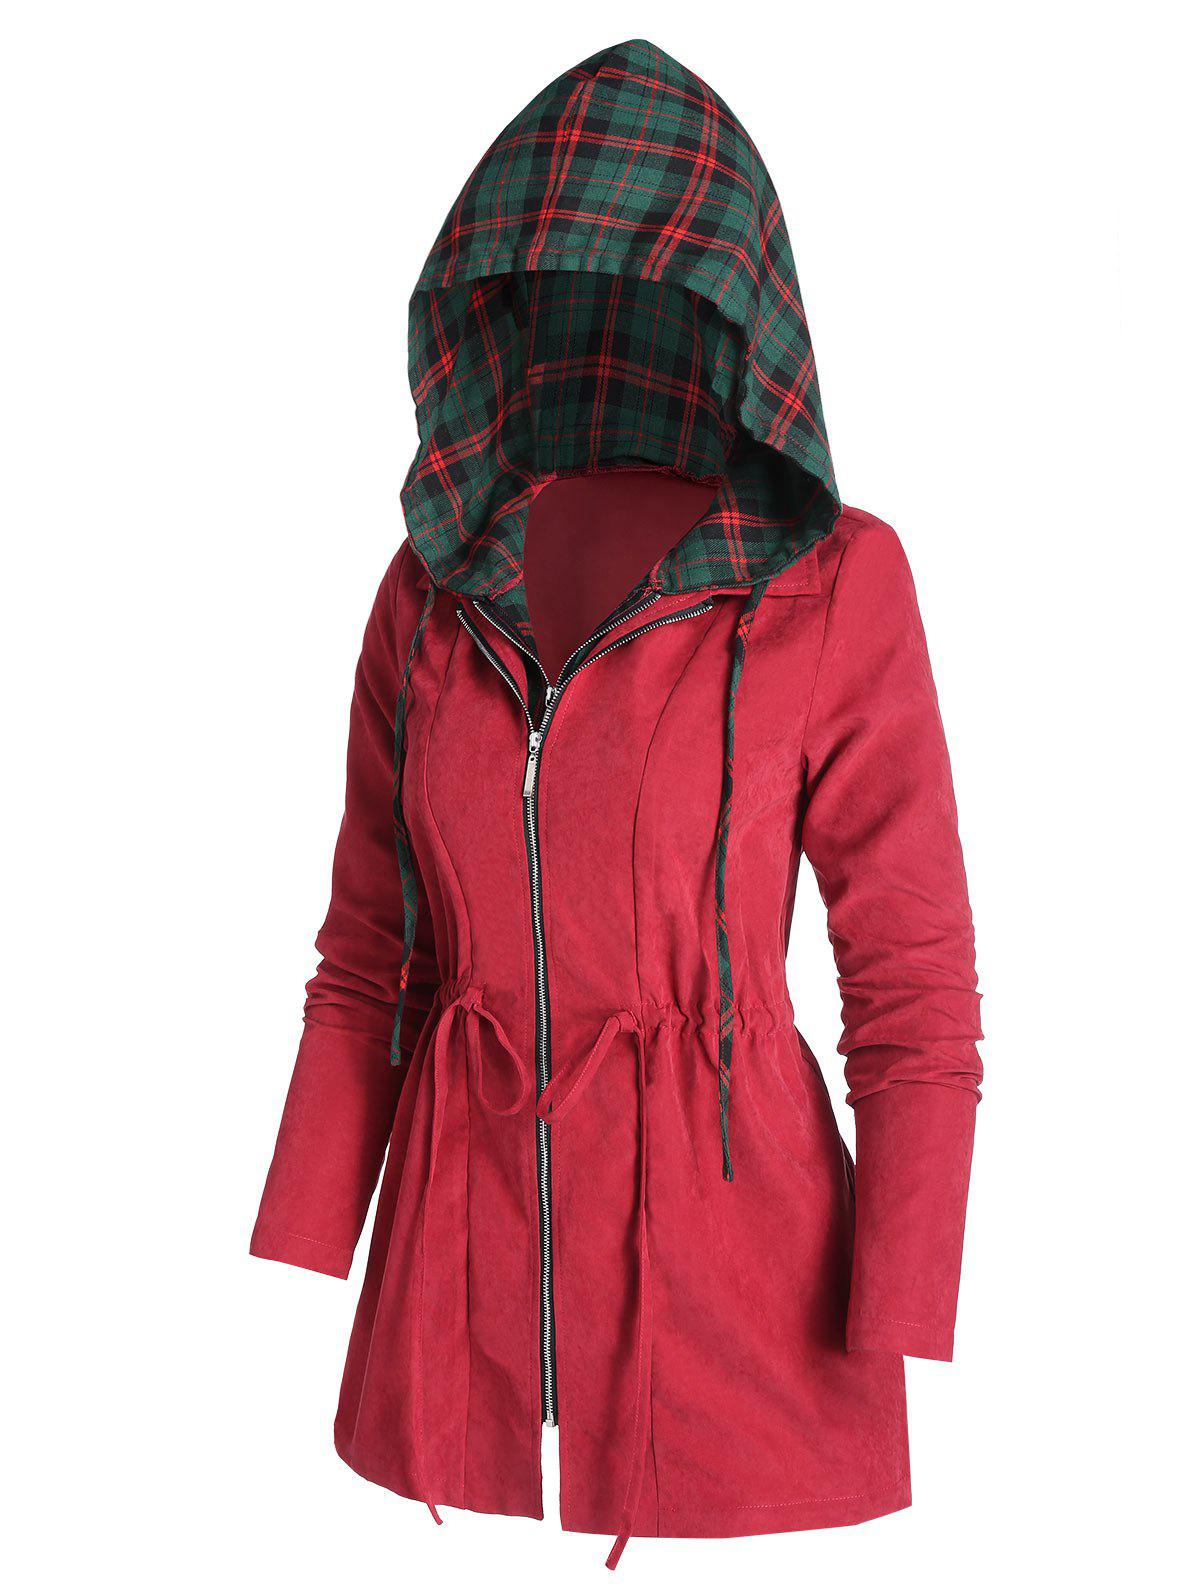 Drawstring Hooded Plaid Coat - RED WINE 3XL